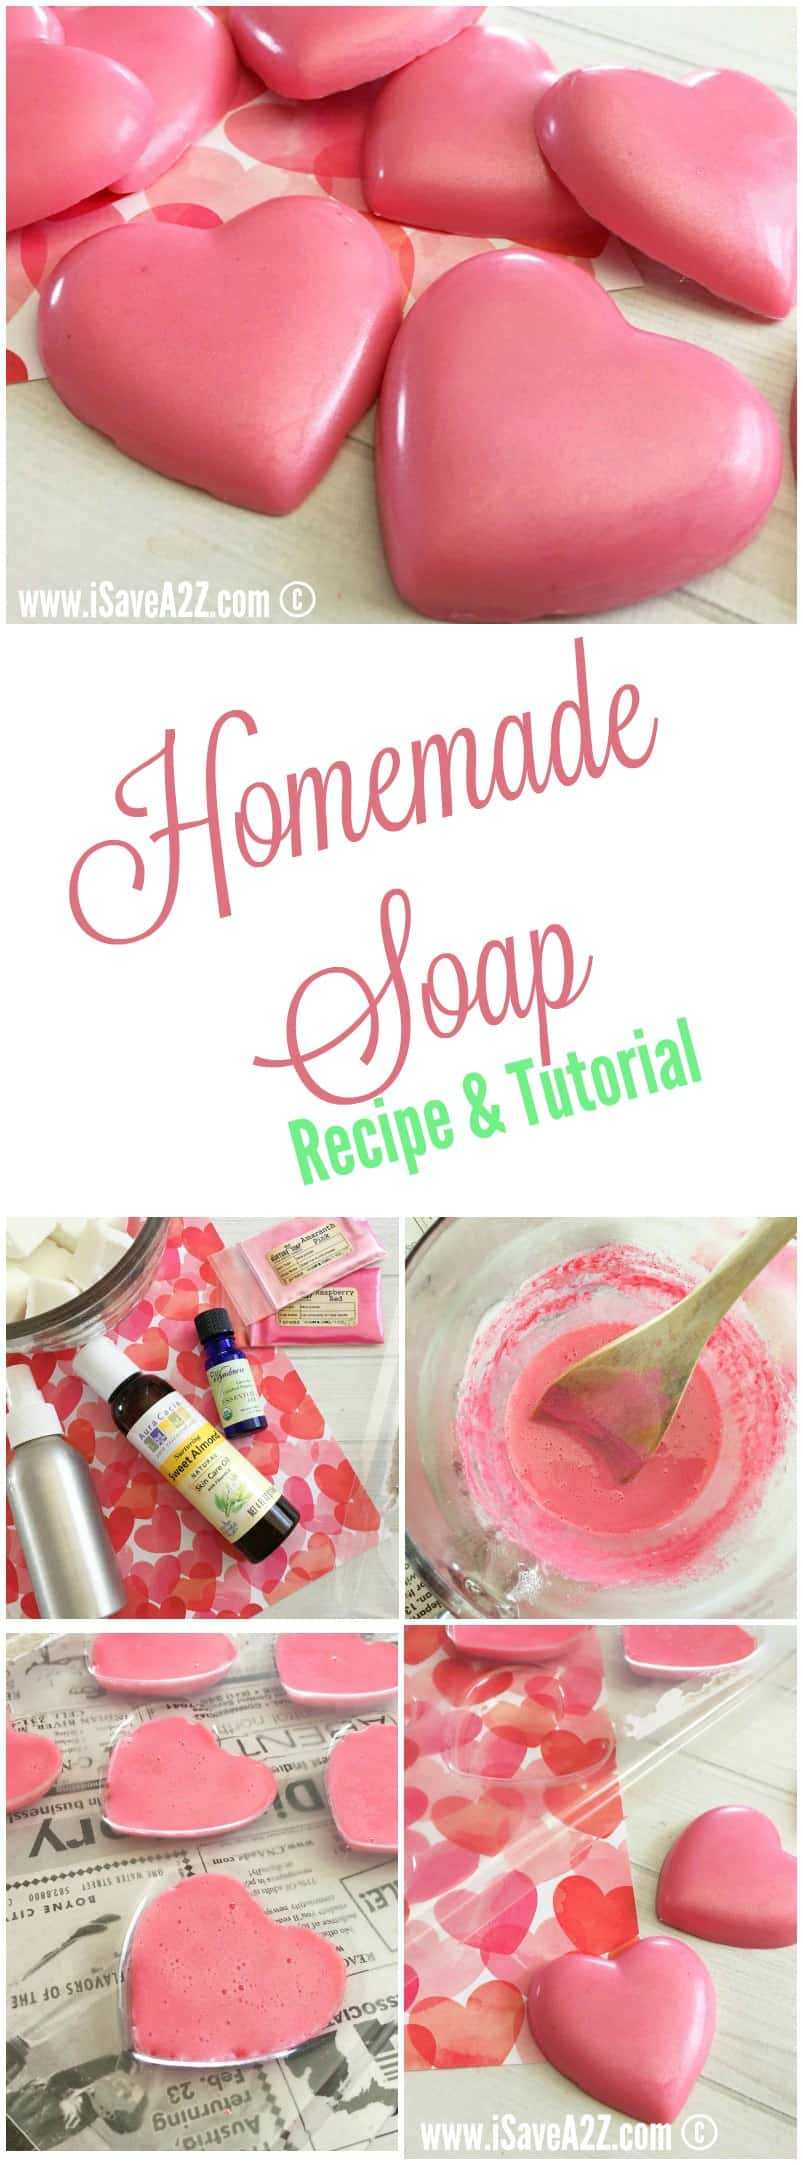 Homemade Soap Recipe (Only 4 Ingredients)!!